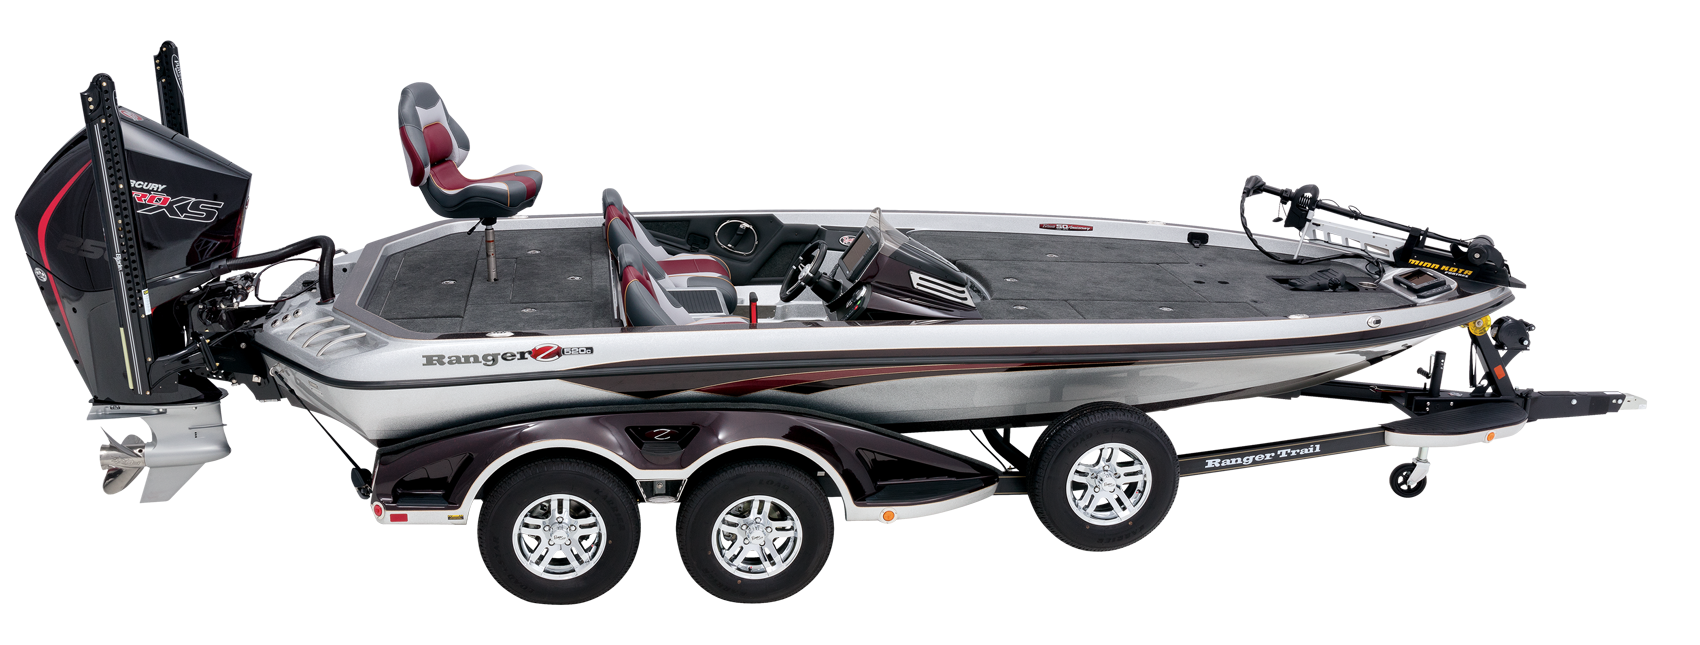 Ranger Z520c Ranger Cup Equipped, the best tournament bass boat